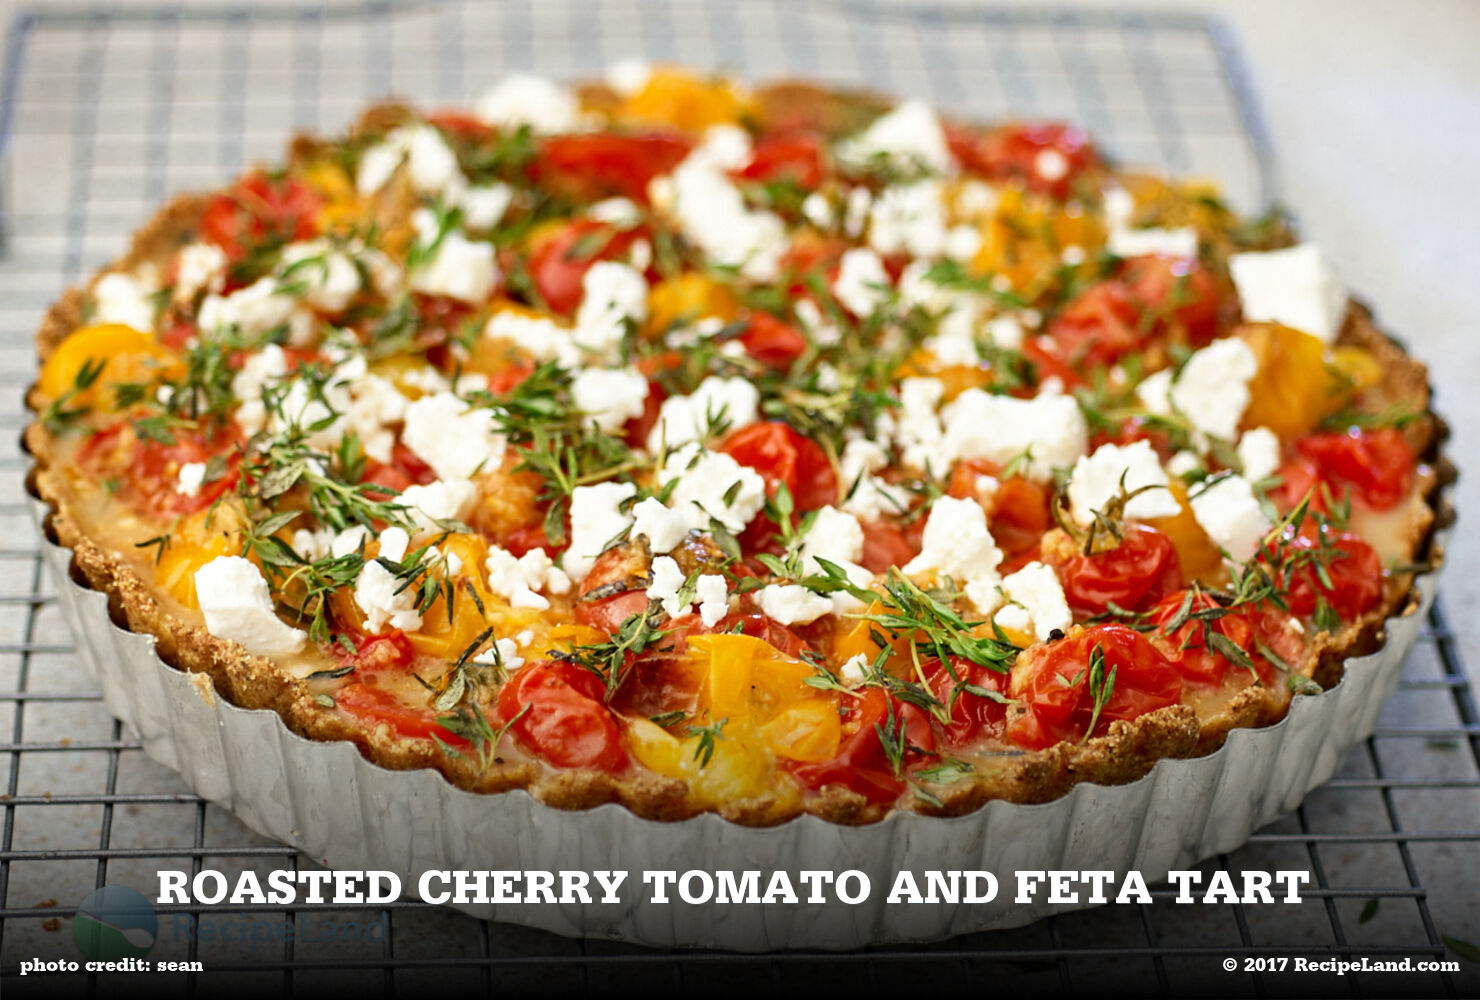 Roasted Cherry Tomato and Feta Tart